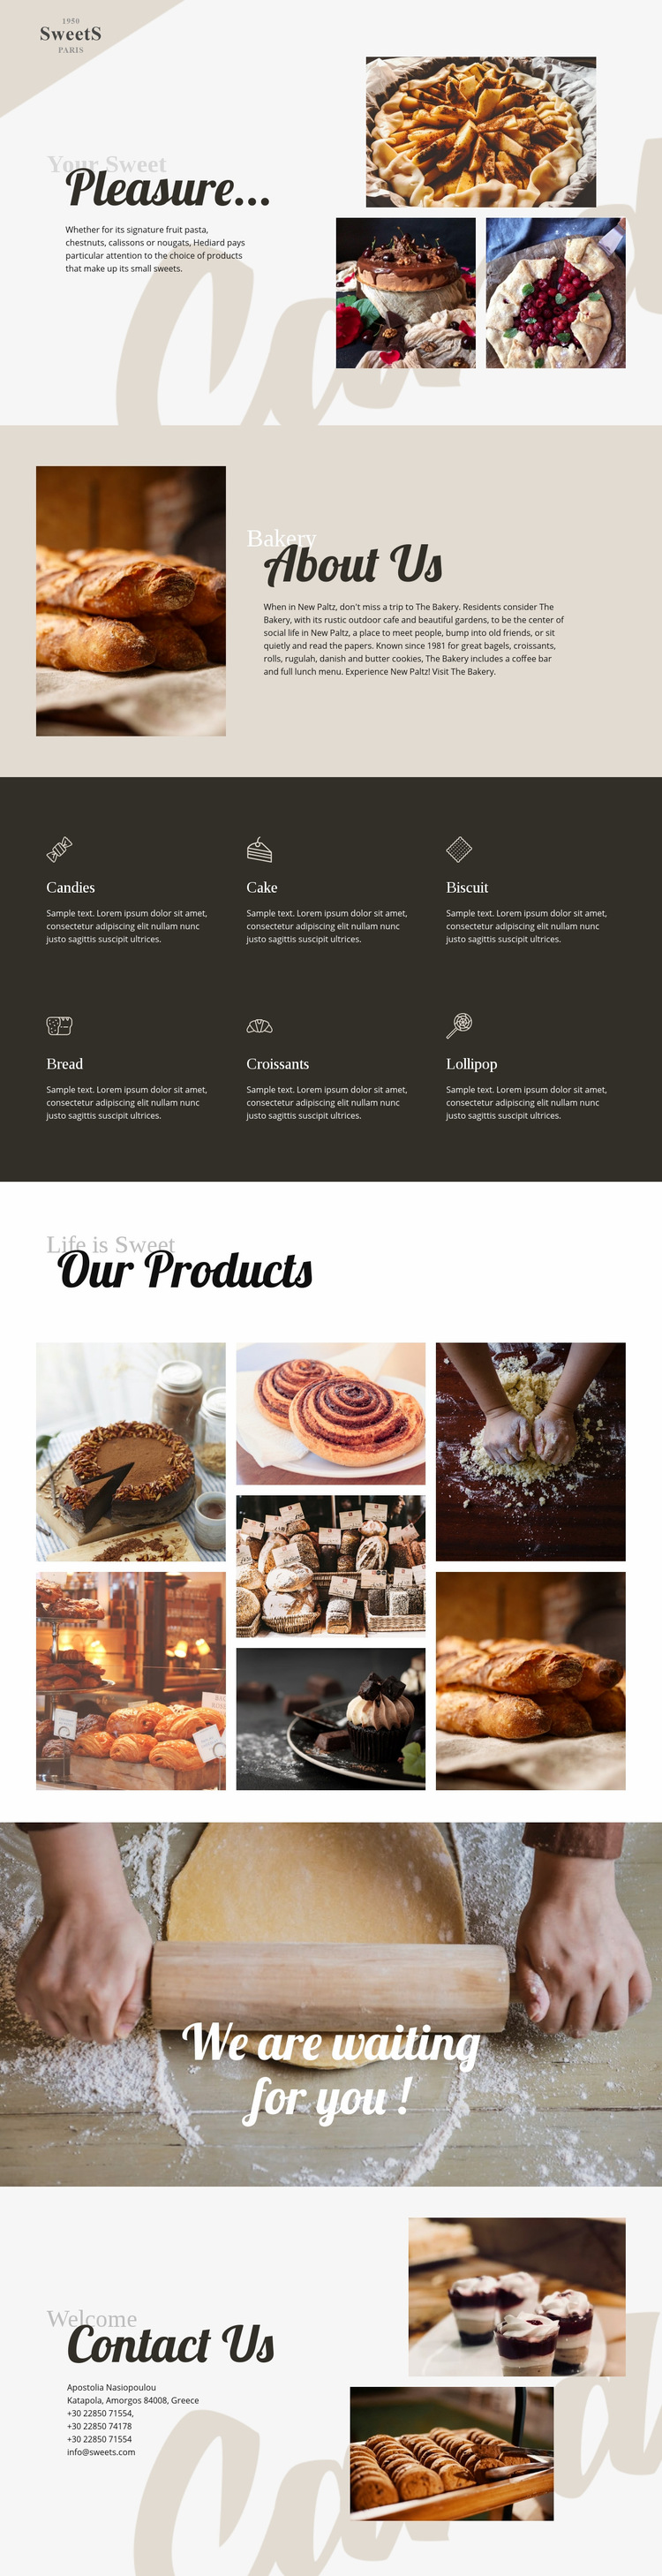 Cakes and baking food Web Page Design